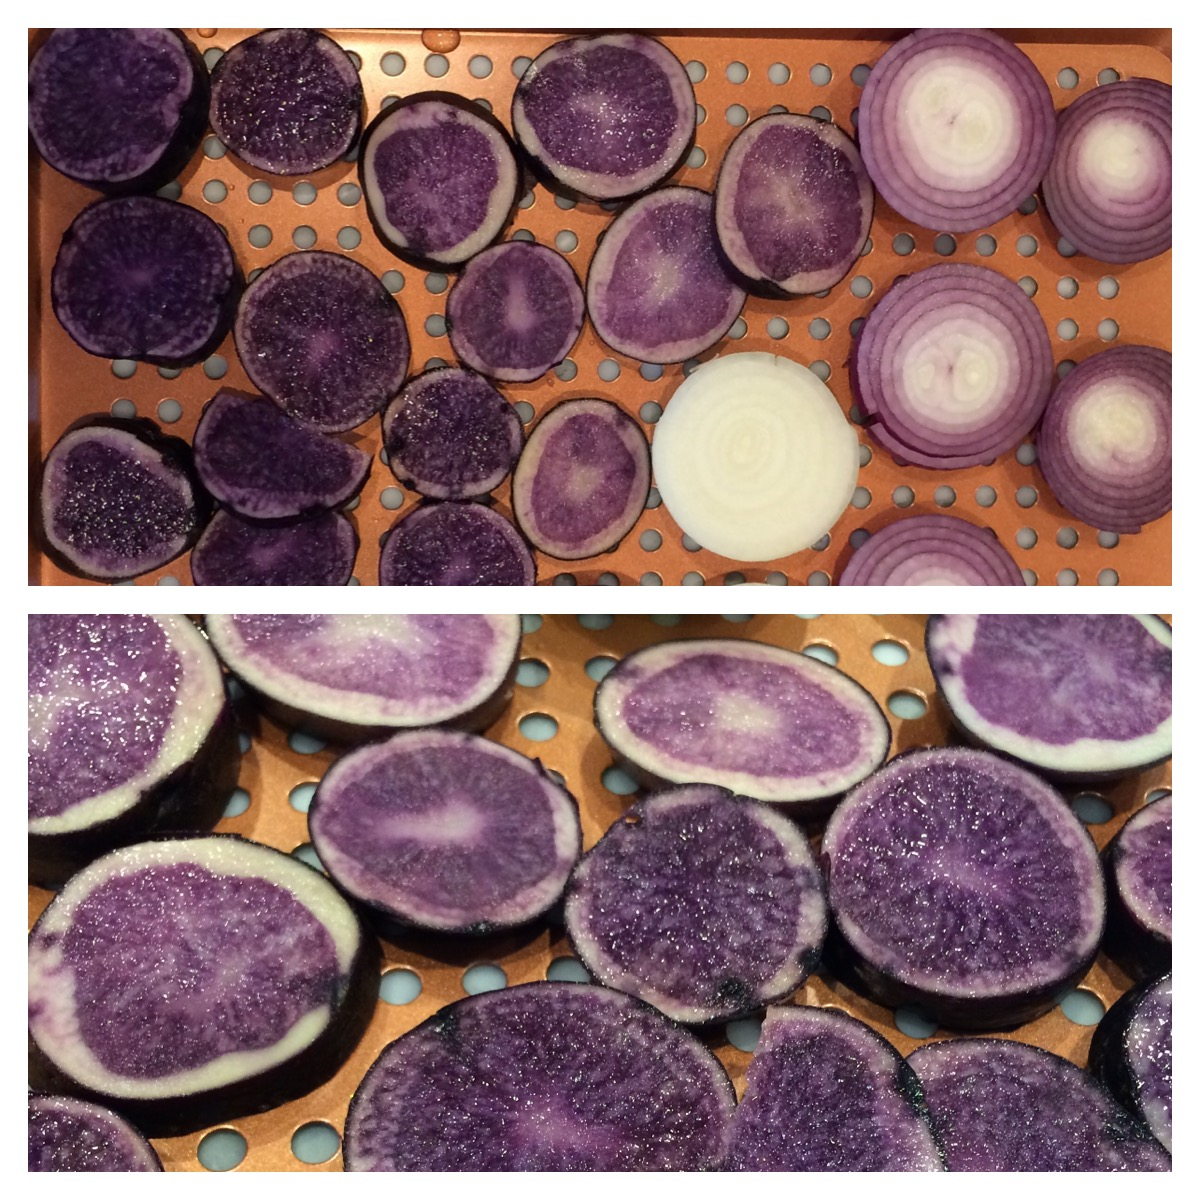 Purple potatoes and red onions